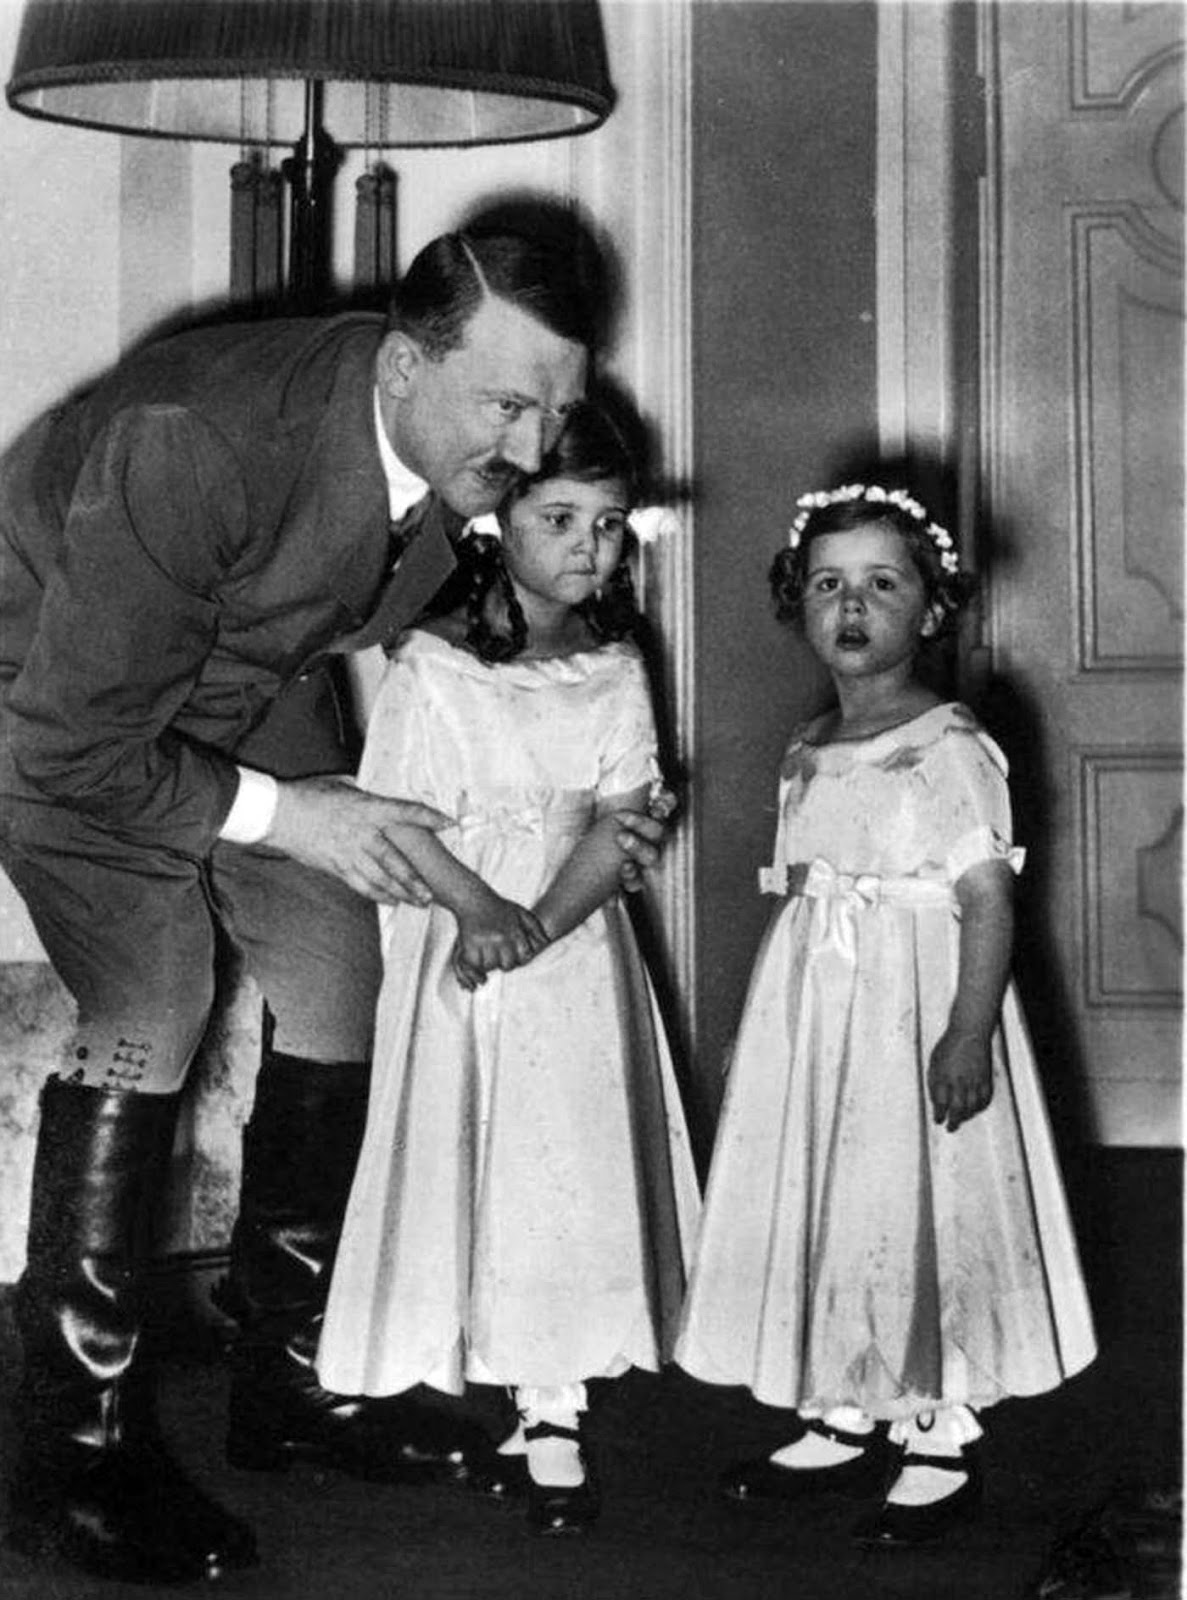 Towards the end of the war, in the Führerbunker, while Hitler's secretaries kept all the other children distracted and happy, one of the secretaries, Traudl Junge, wrote that Helga looked visibly upset.